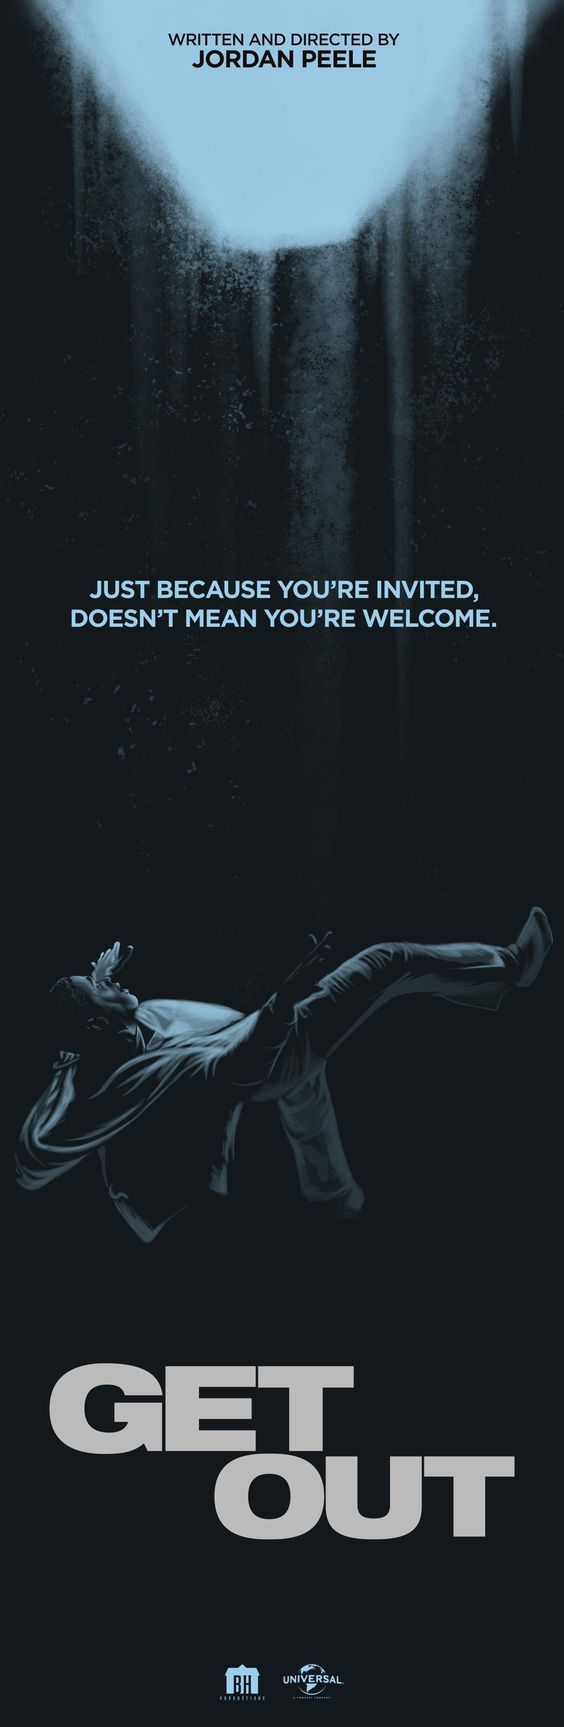 Get Out Trip full movie online free 2017